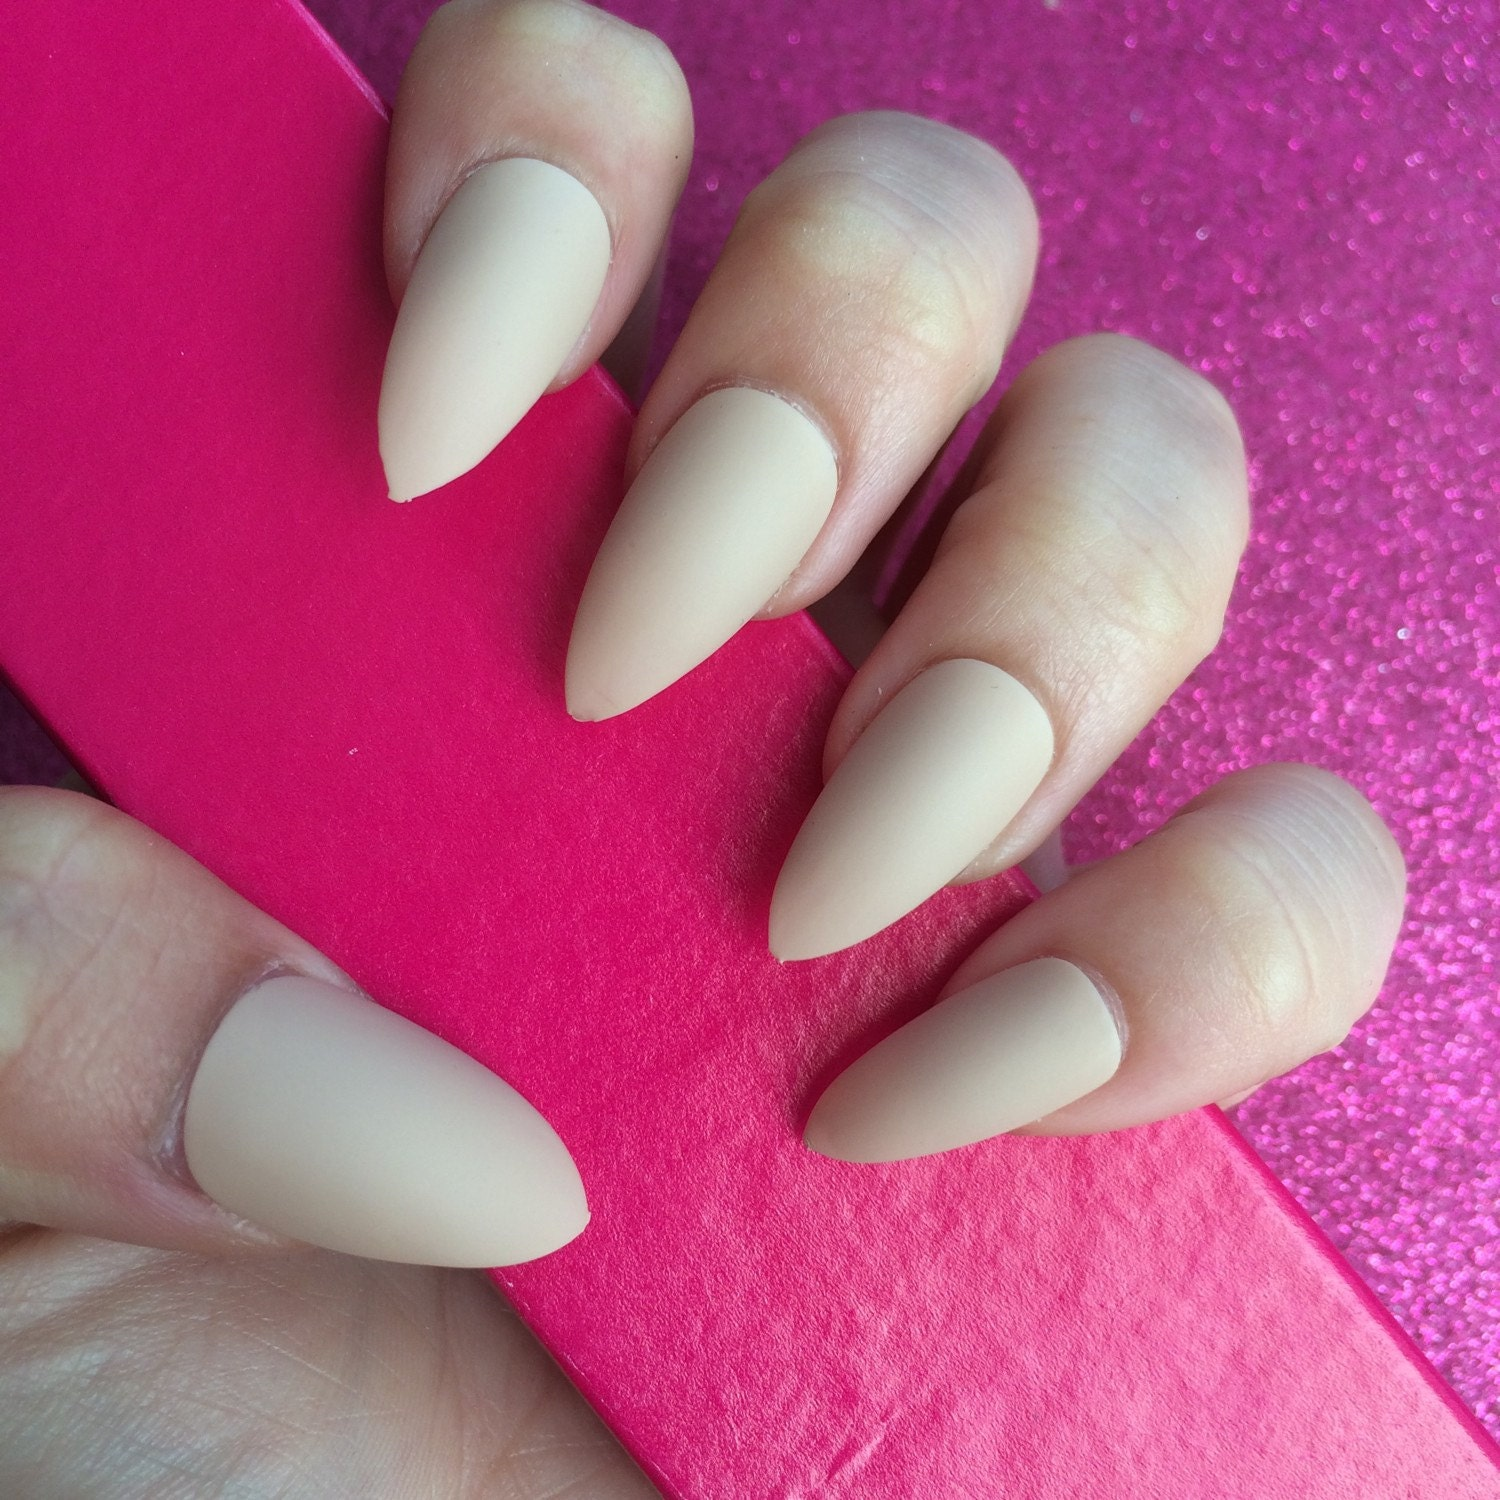 Fantastic Nails Stiletto Matte Model - Nail Art Ideas - morihati.com